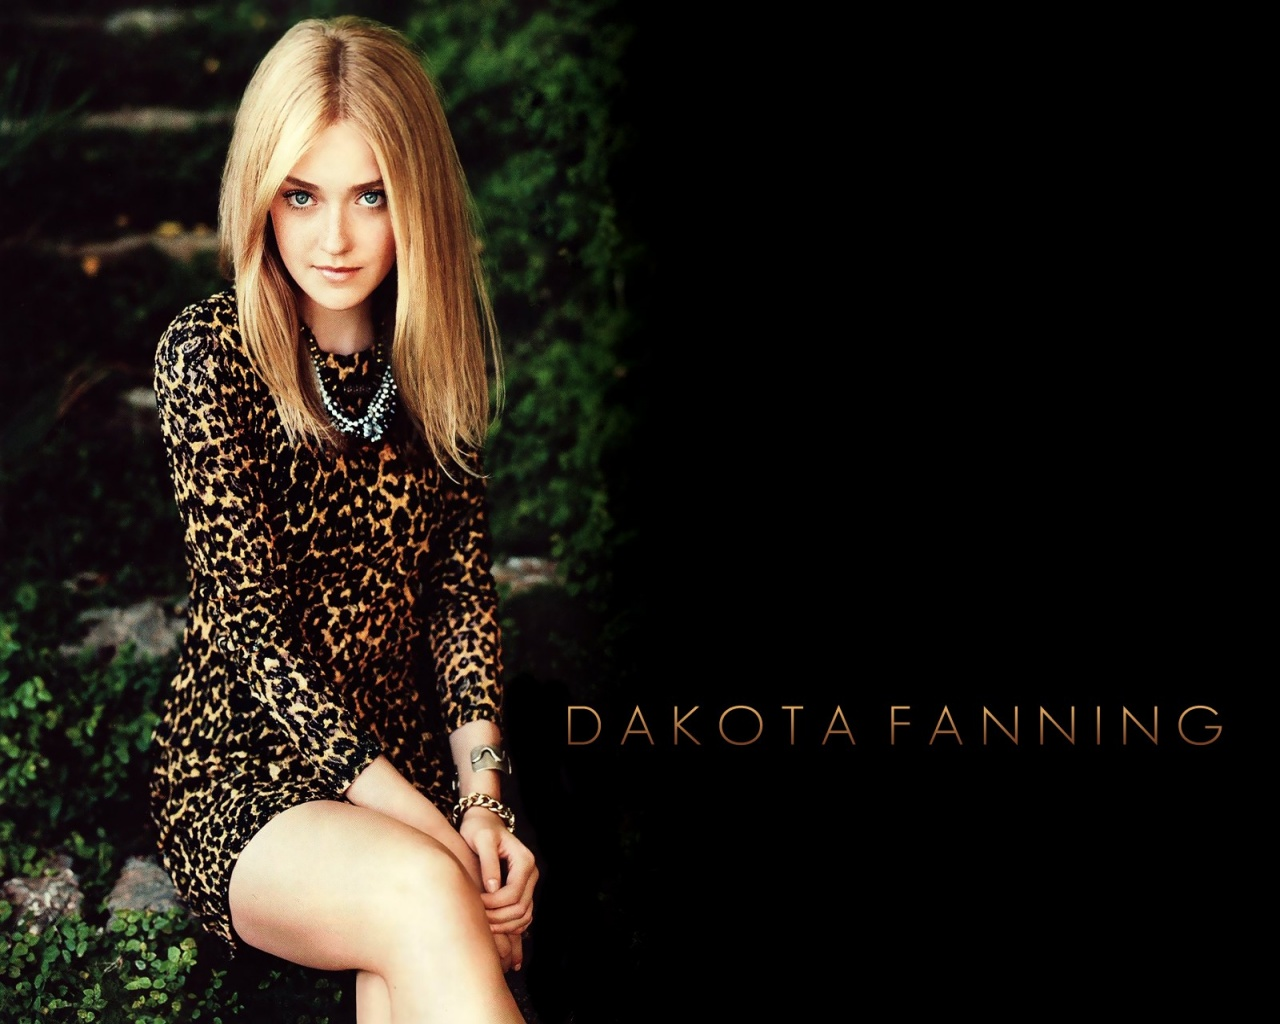 Please check our widescreen hd wallpaper below and bring beauty to your desktop. Dakota Fanning HQ Wallpaper